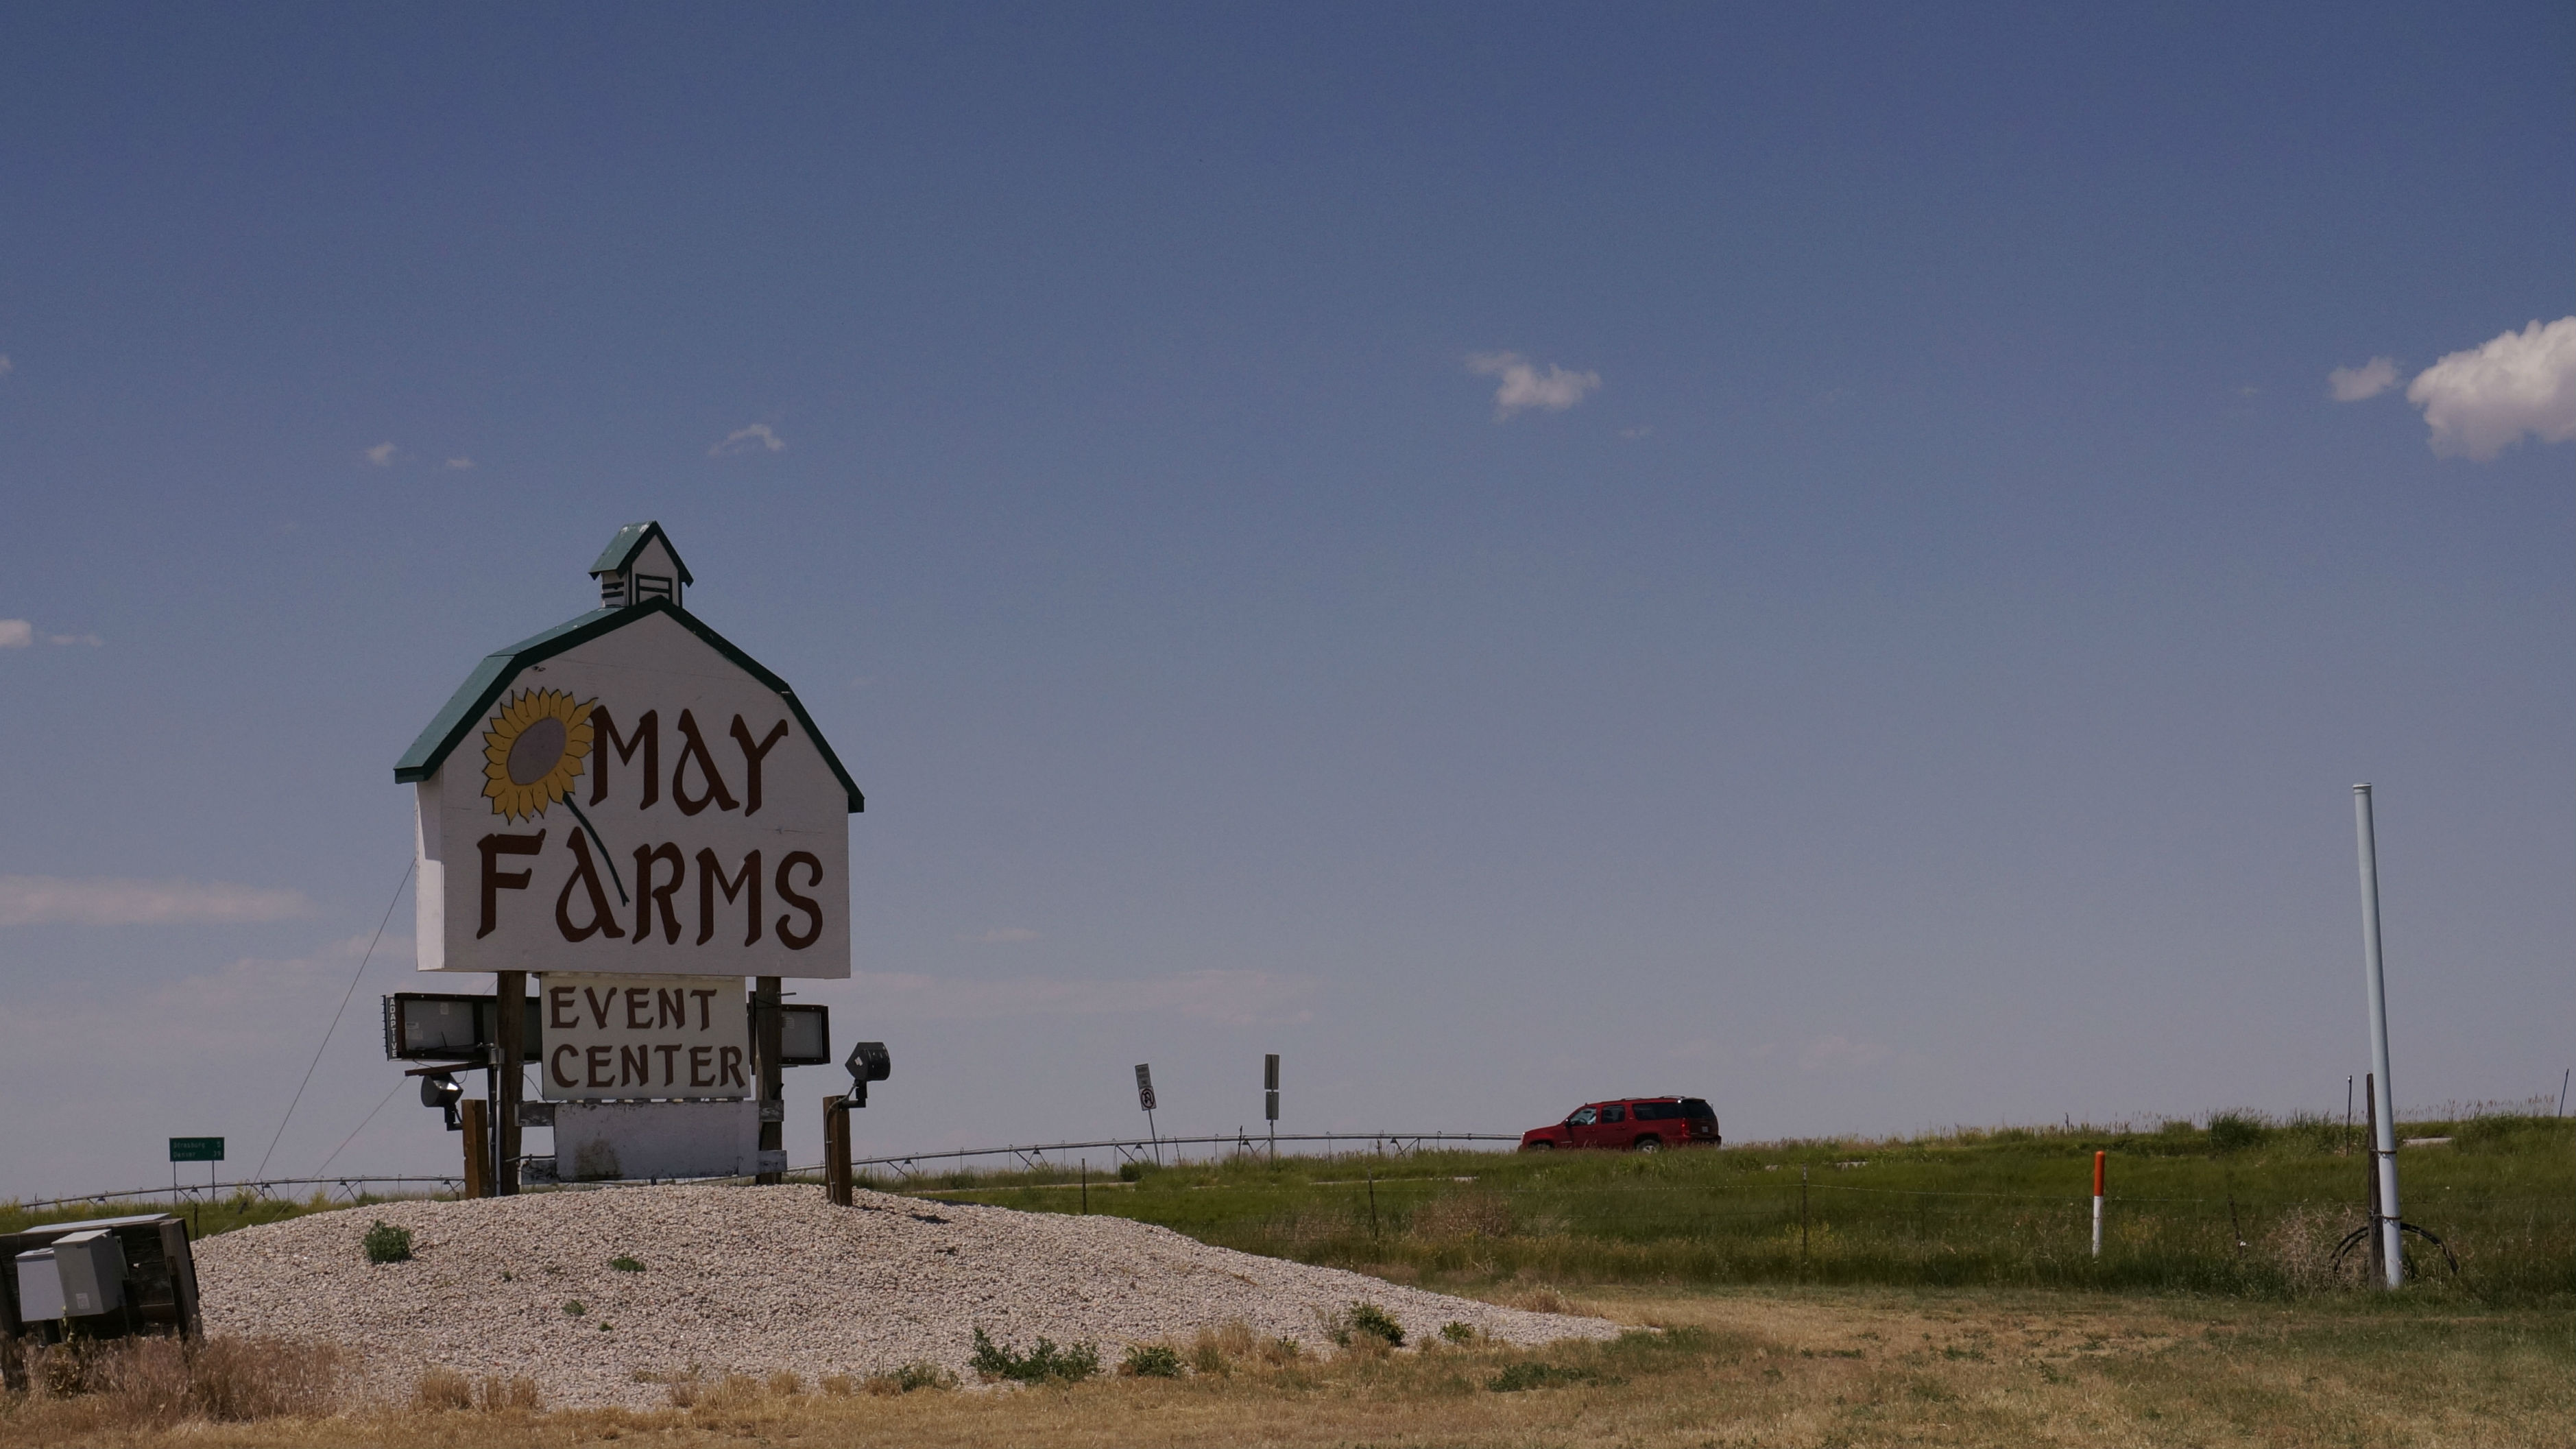 Photo: May Farms